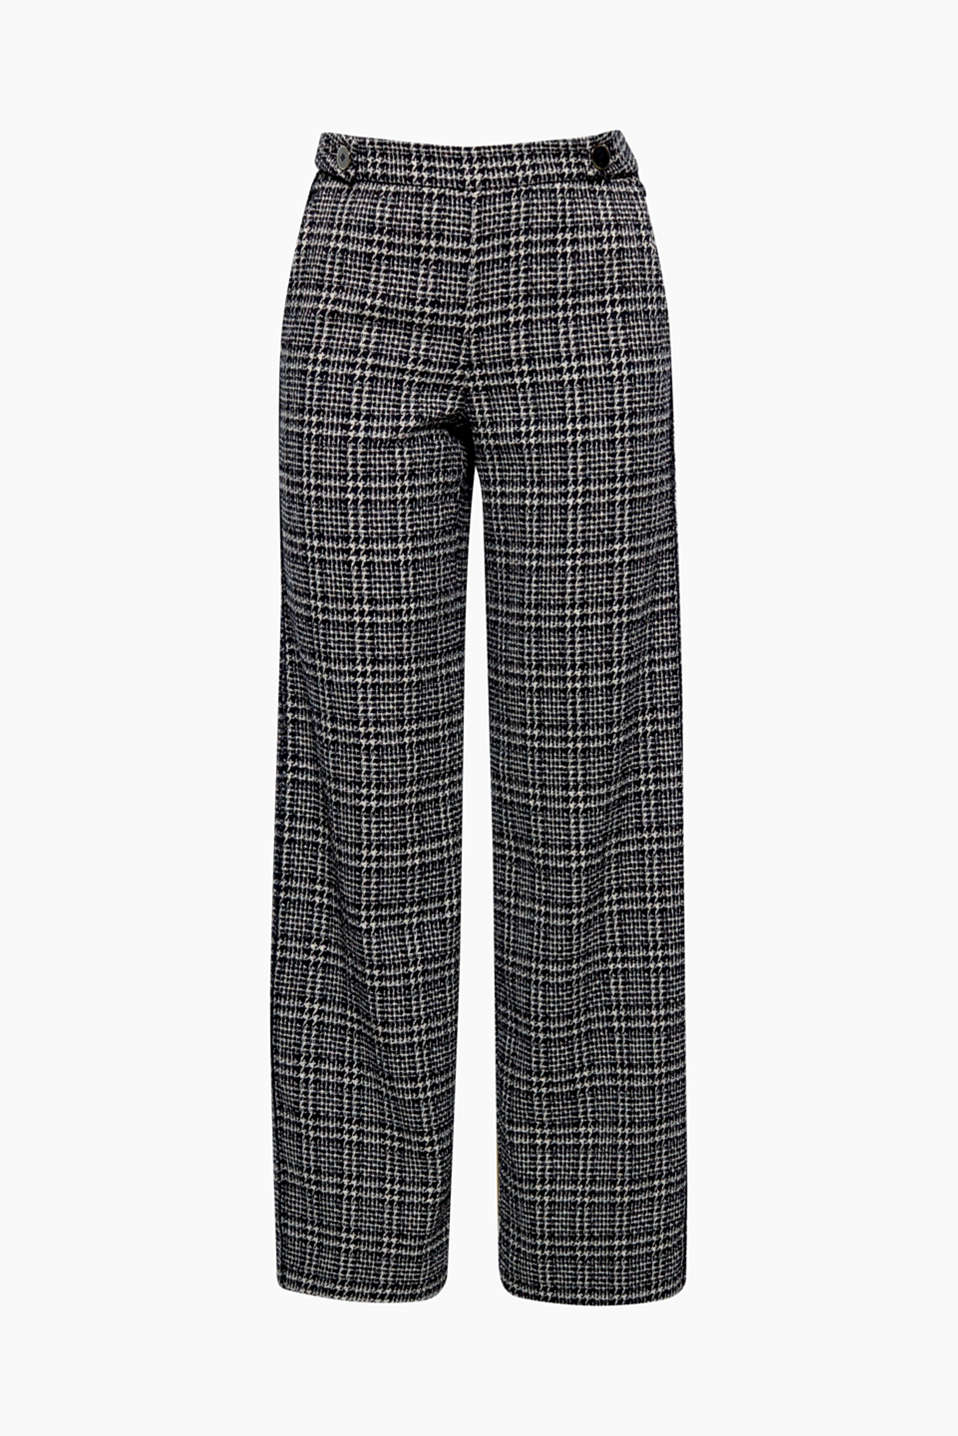 Fashion highlight: trainers and a white blouse are perfect wearing with these extra-wide, checked bouclé trousers!